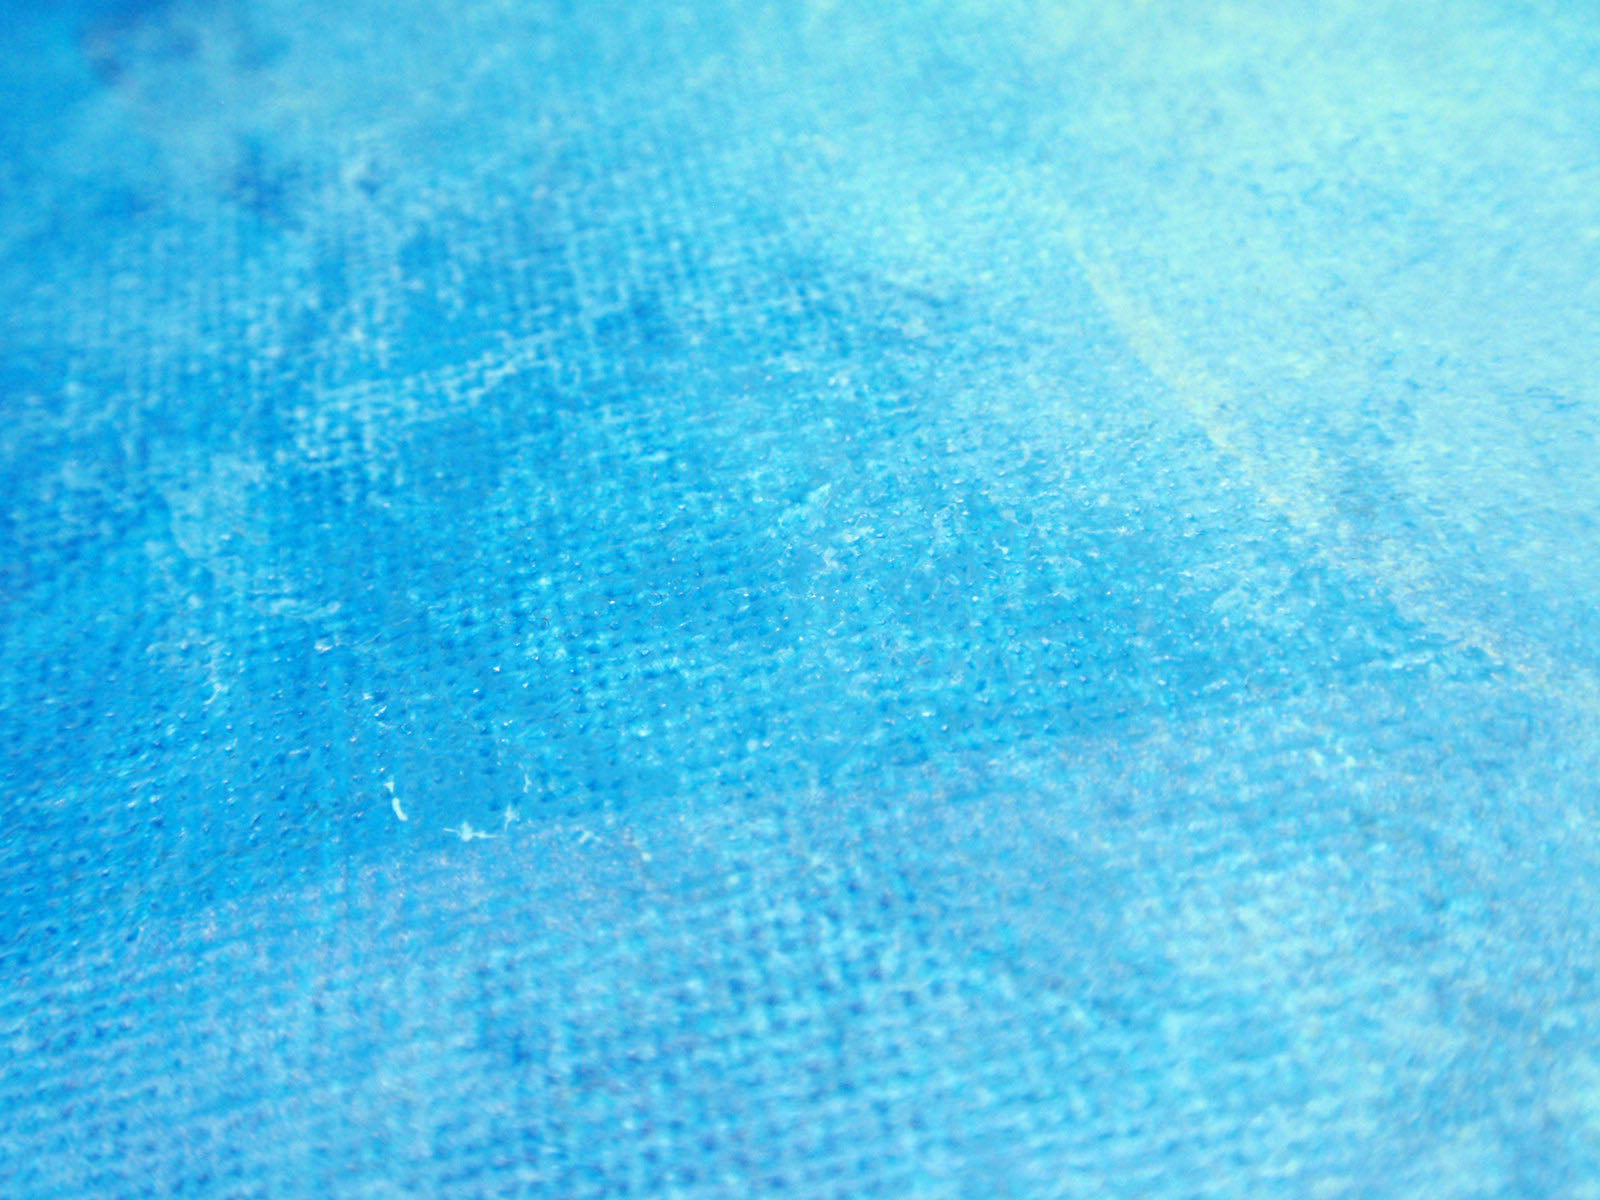 paint background blue